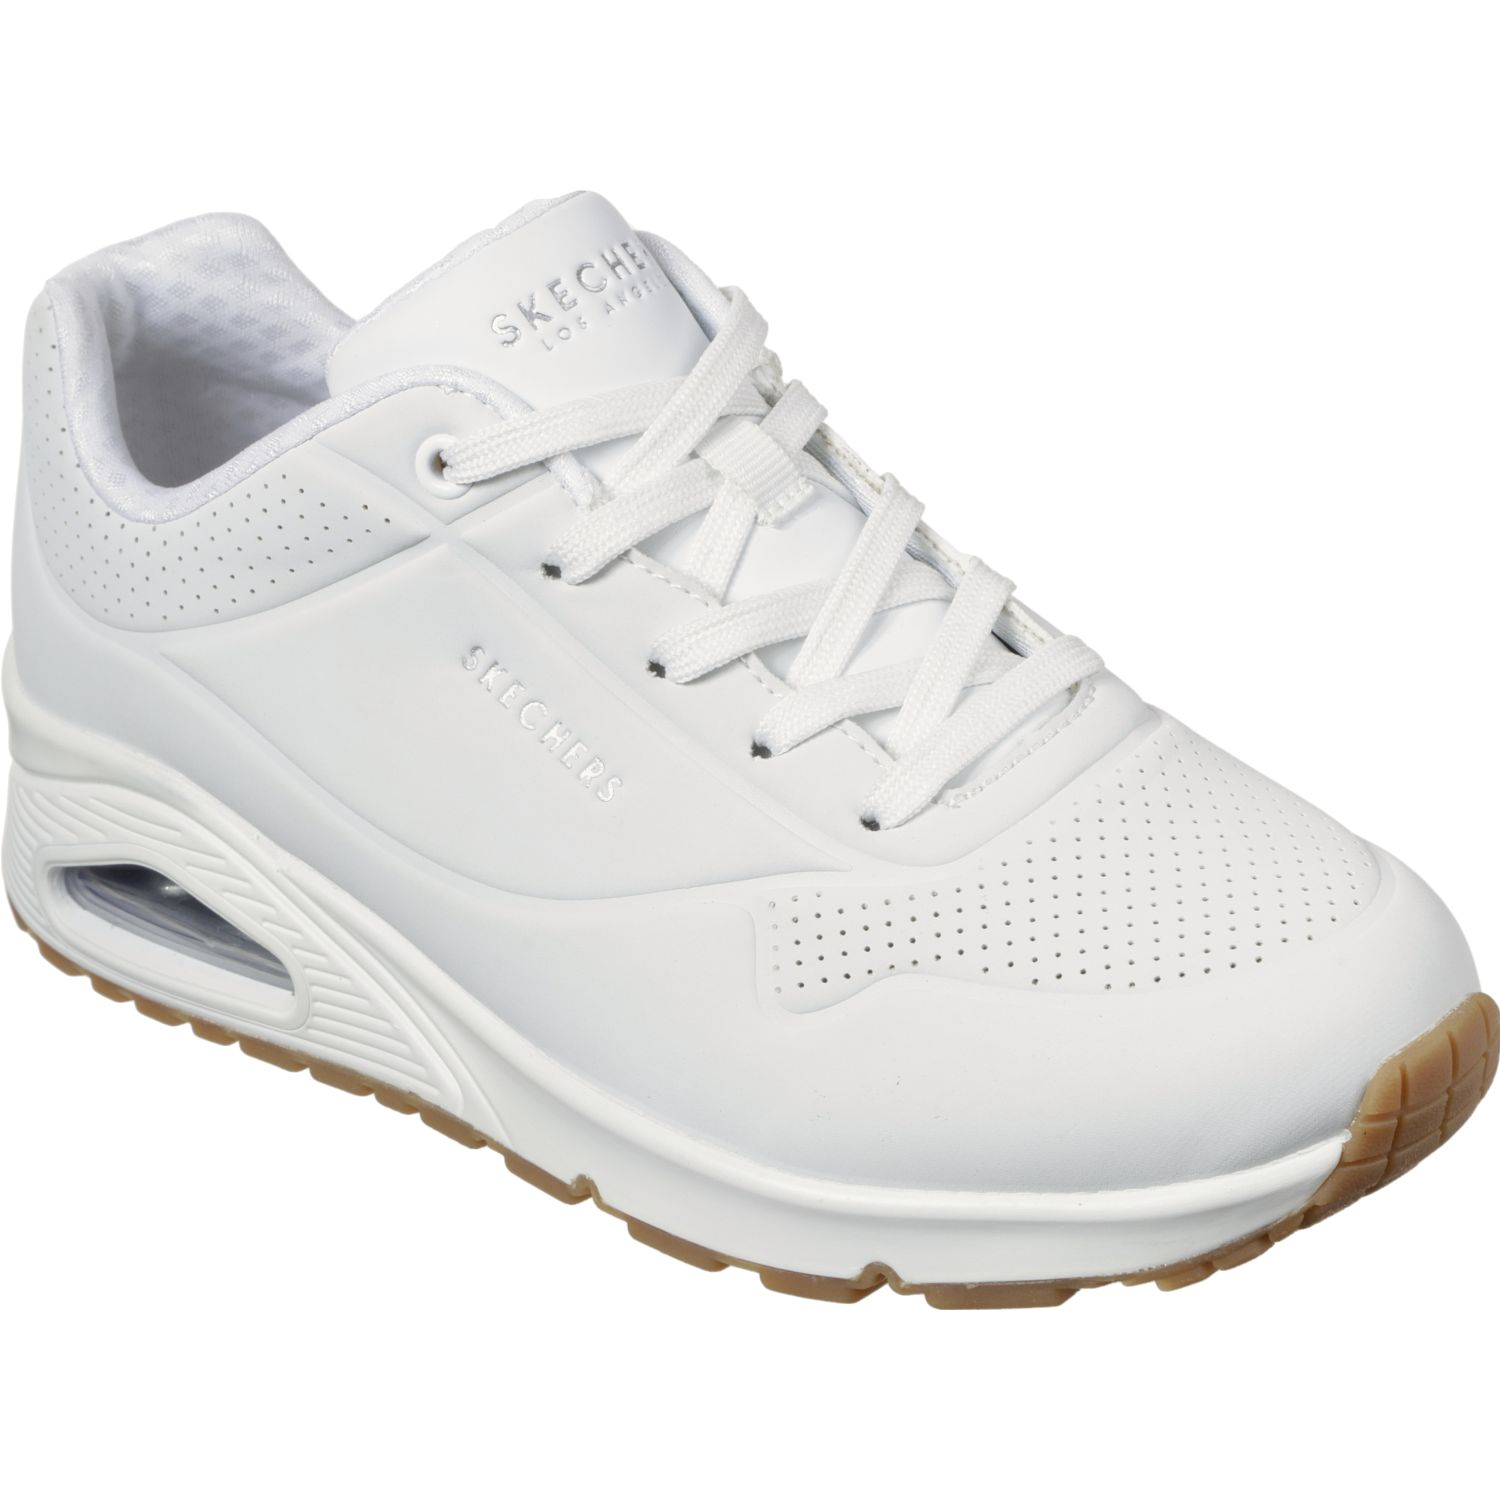 Skechers uno - stand on air Blanco Walking